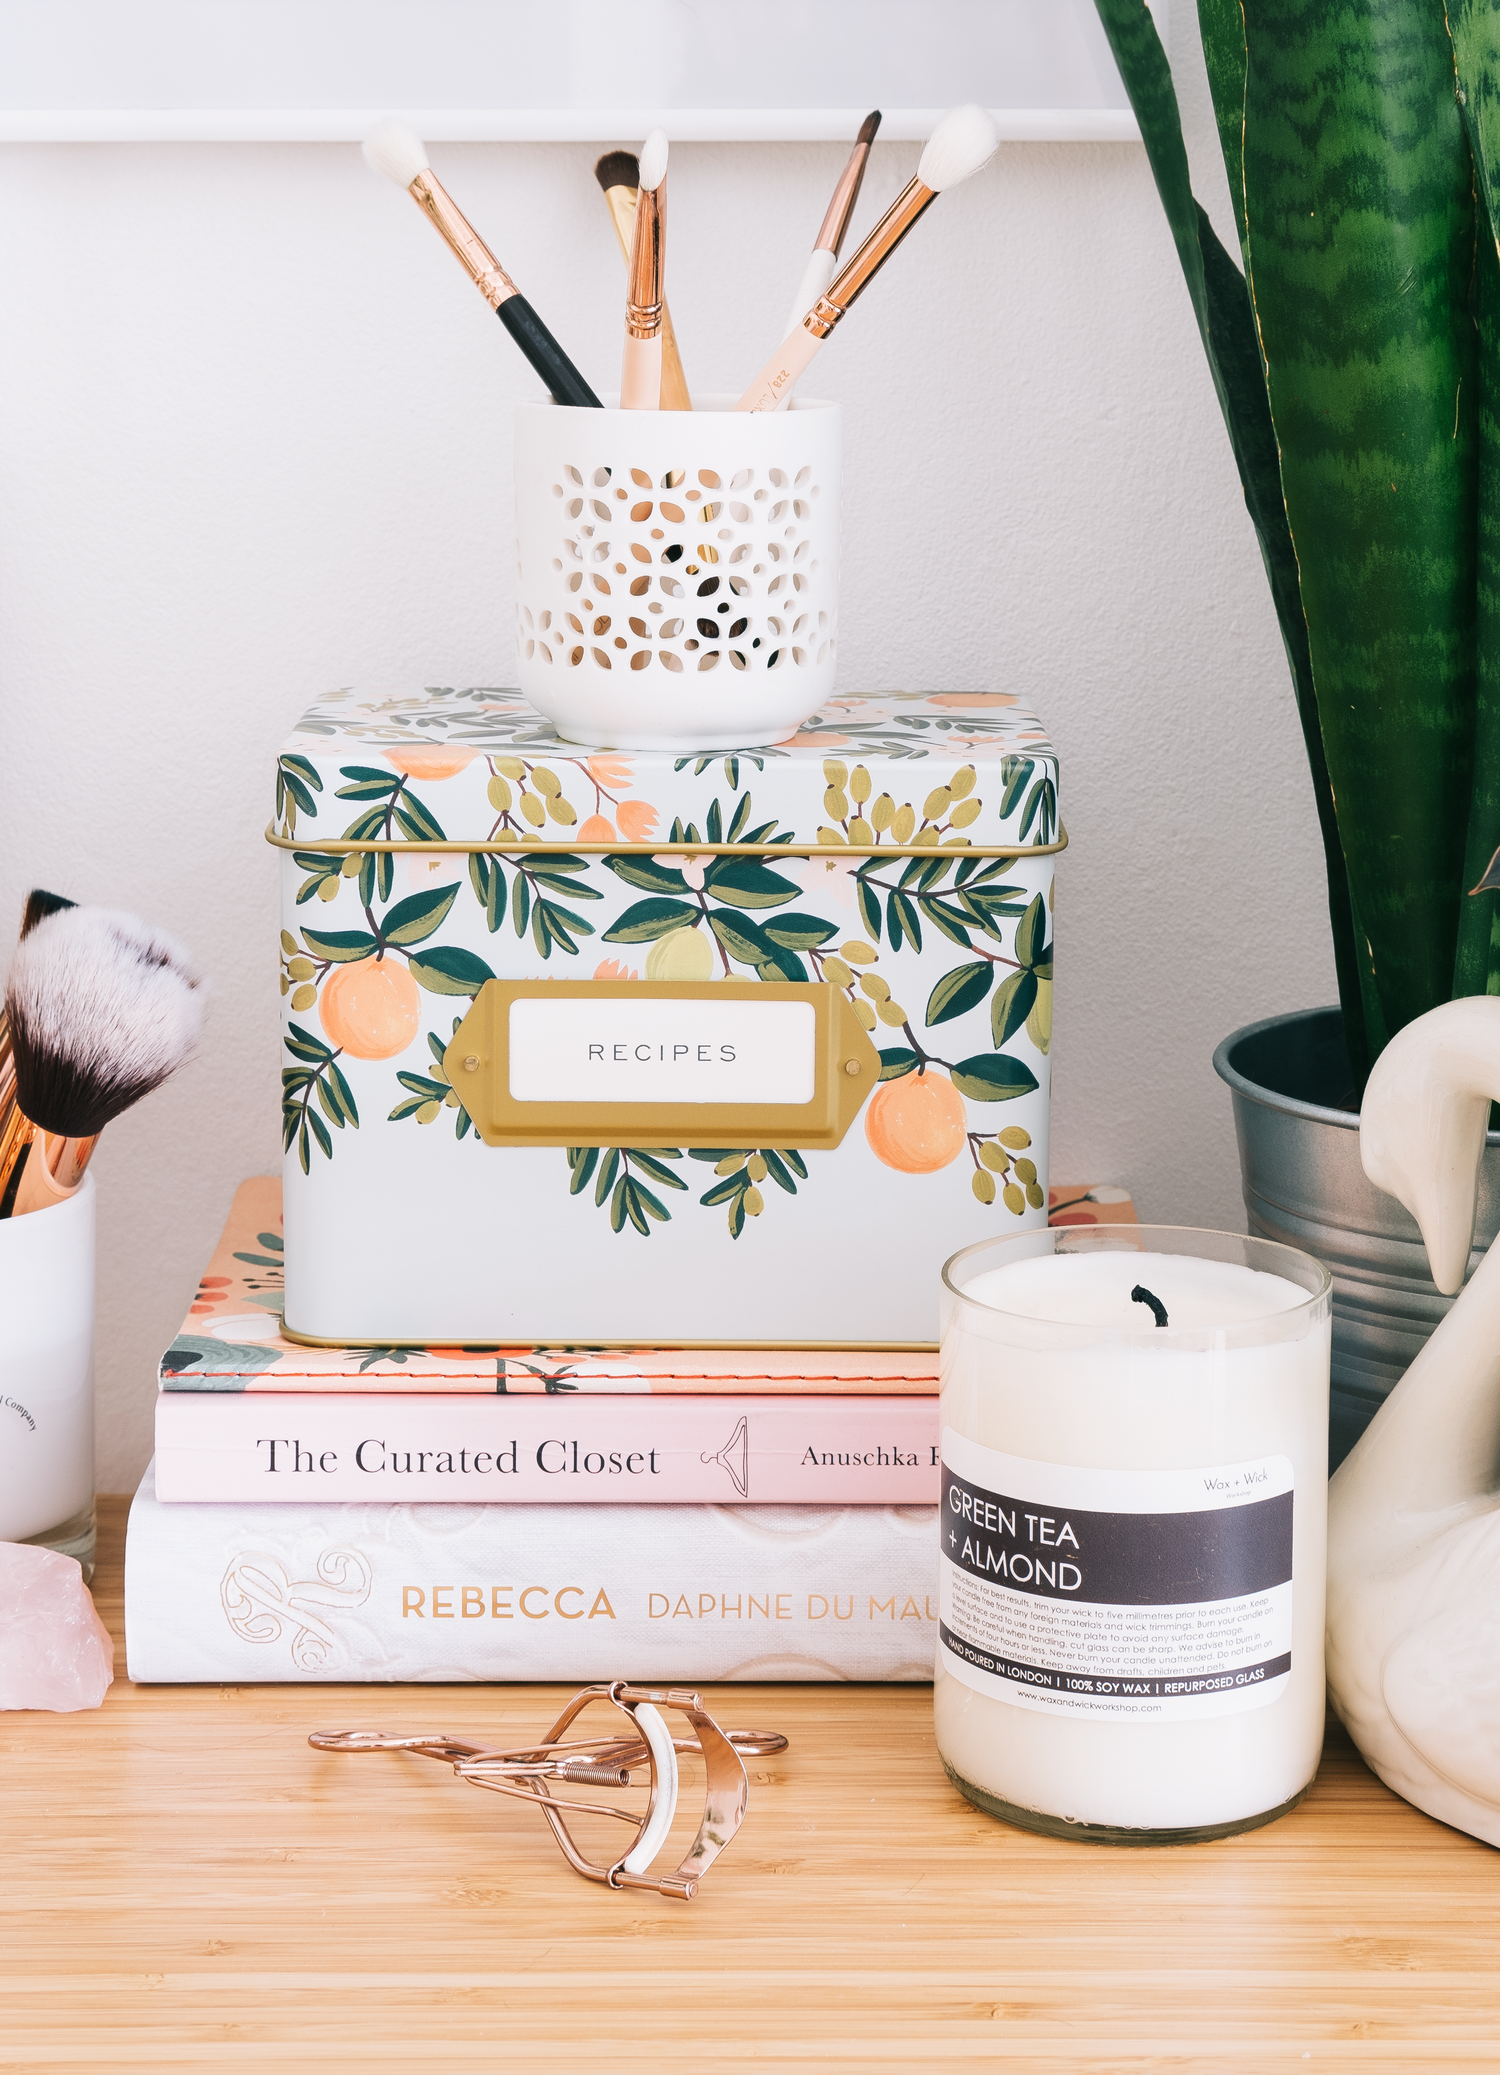 My Most Loved In May | From Roses | Bloglovin'